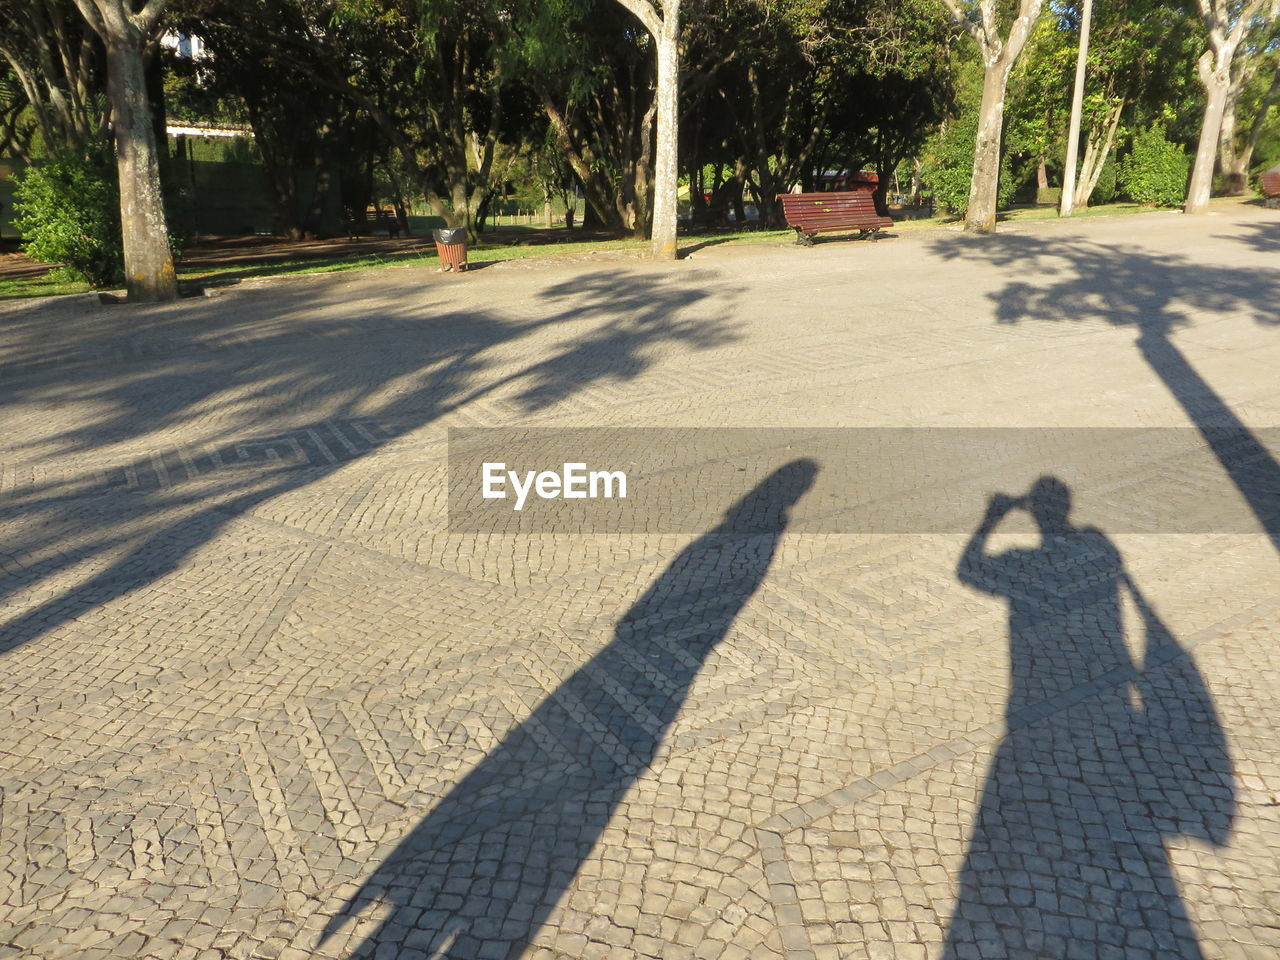 shadow, sunlight, nature, transportation, plant, tree, focus on shadow, day, two people, city, real people, men, togetherness, road, outdoors, street, unrecognizable person, motor vehicle, lifestyles, the way forward, long shadow - shadow